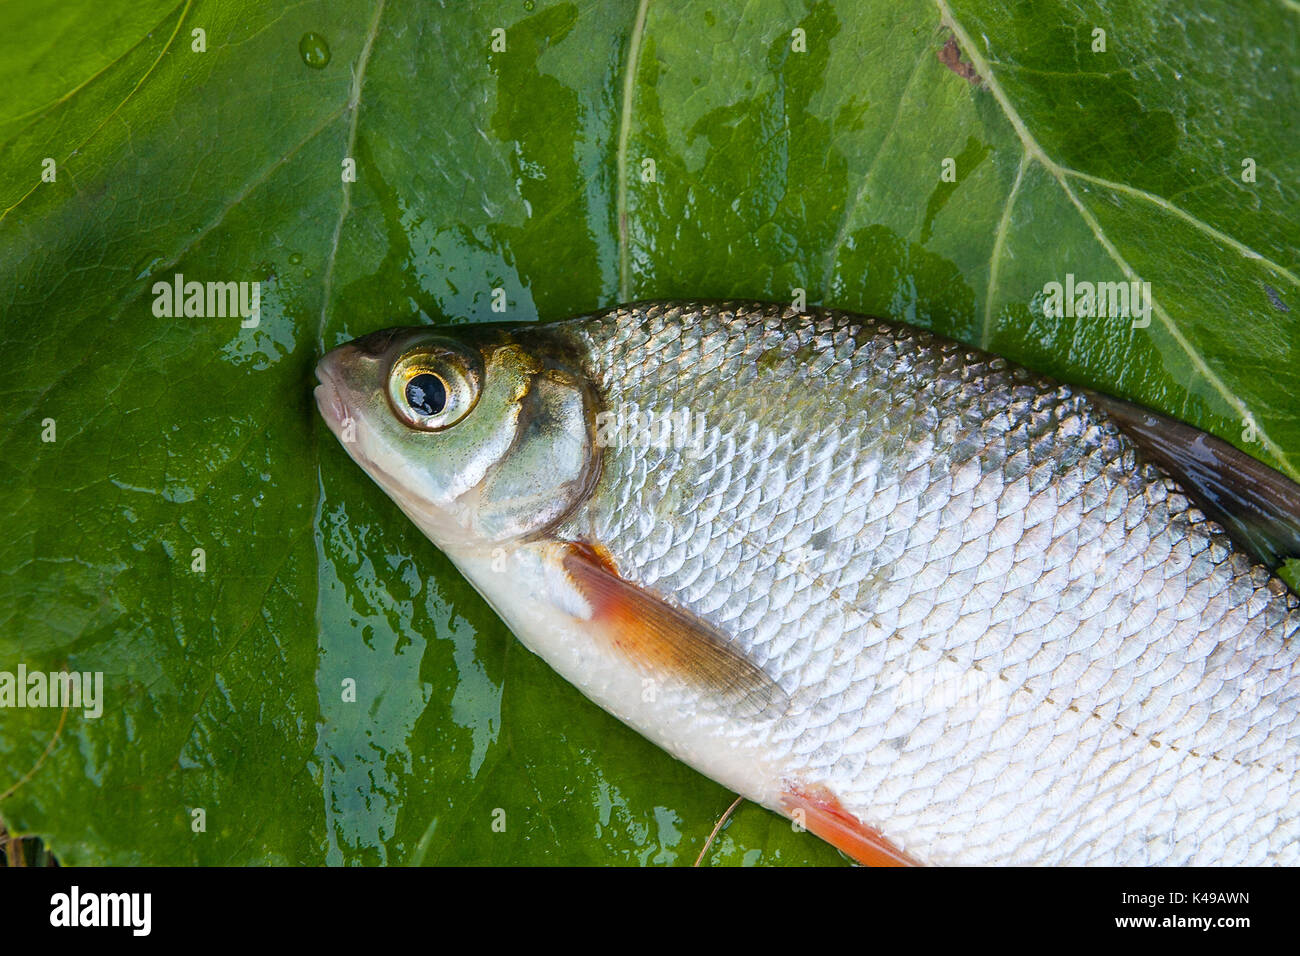 We have in stock frozen salted minnows year round - Close Up View Of The Just Taken From The Water Freshwater White Bream Or Silver Fish